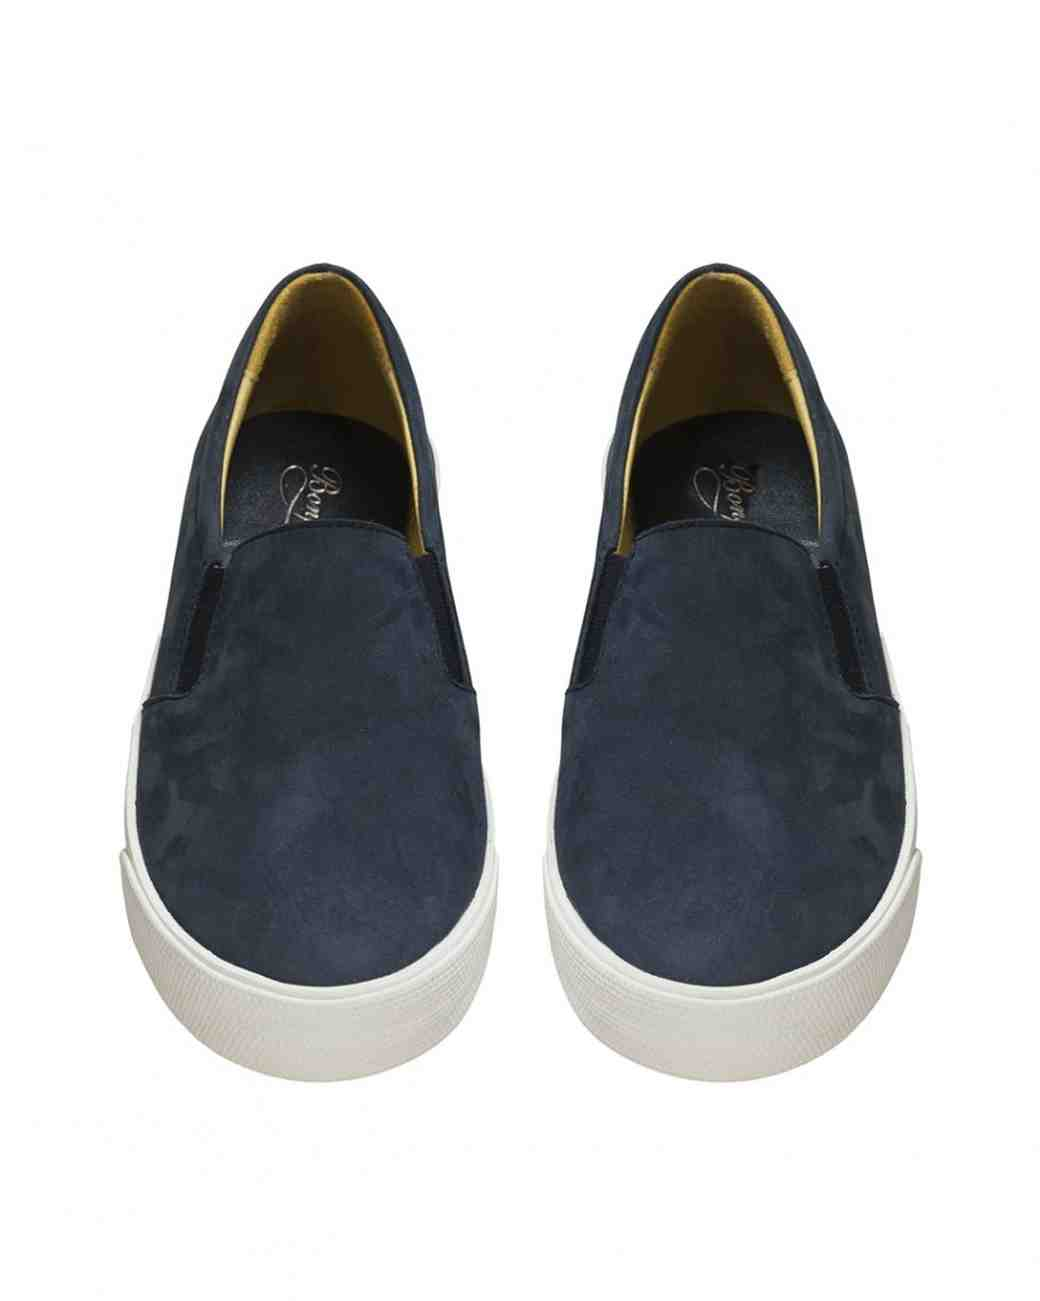 Bonpoint slip on ring bearer shoes